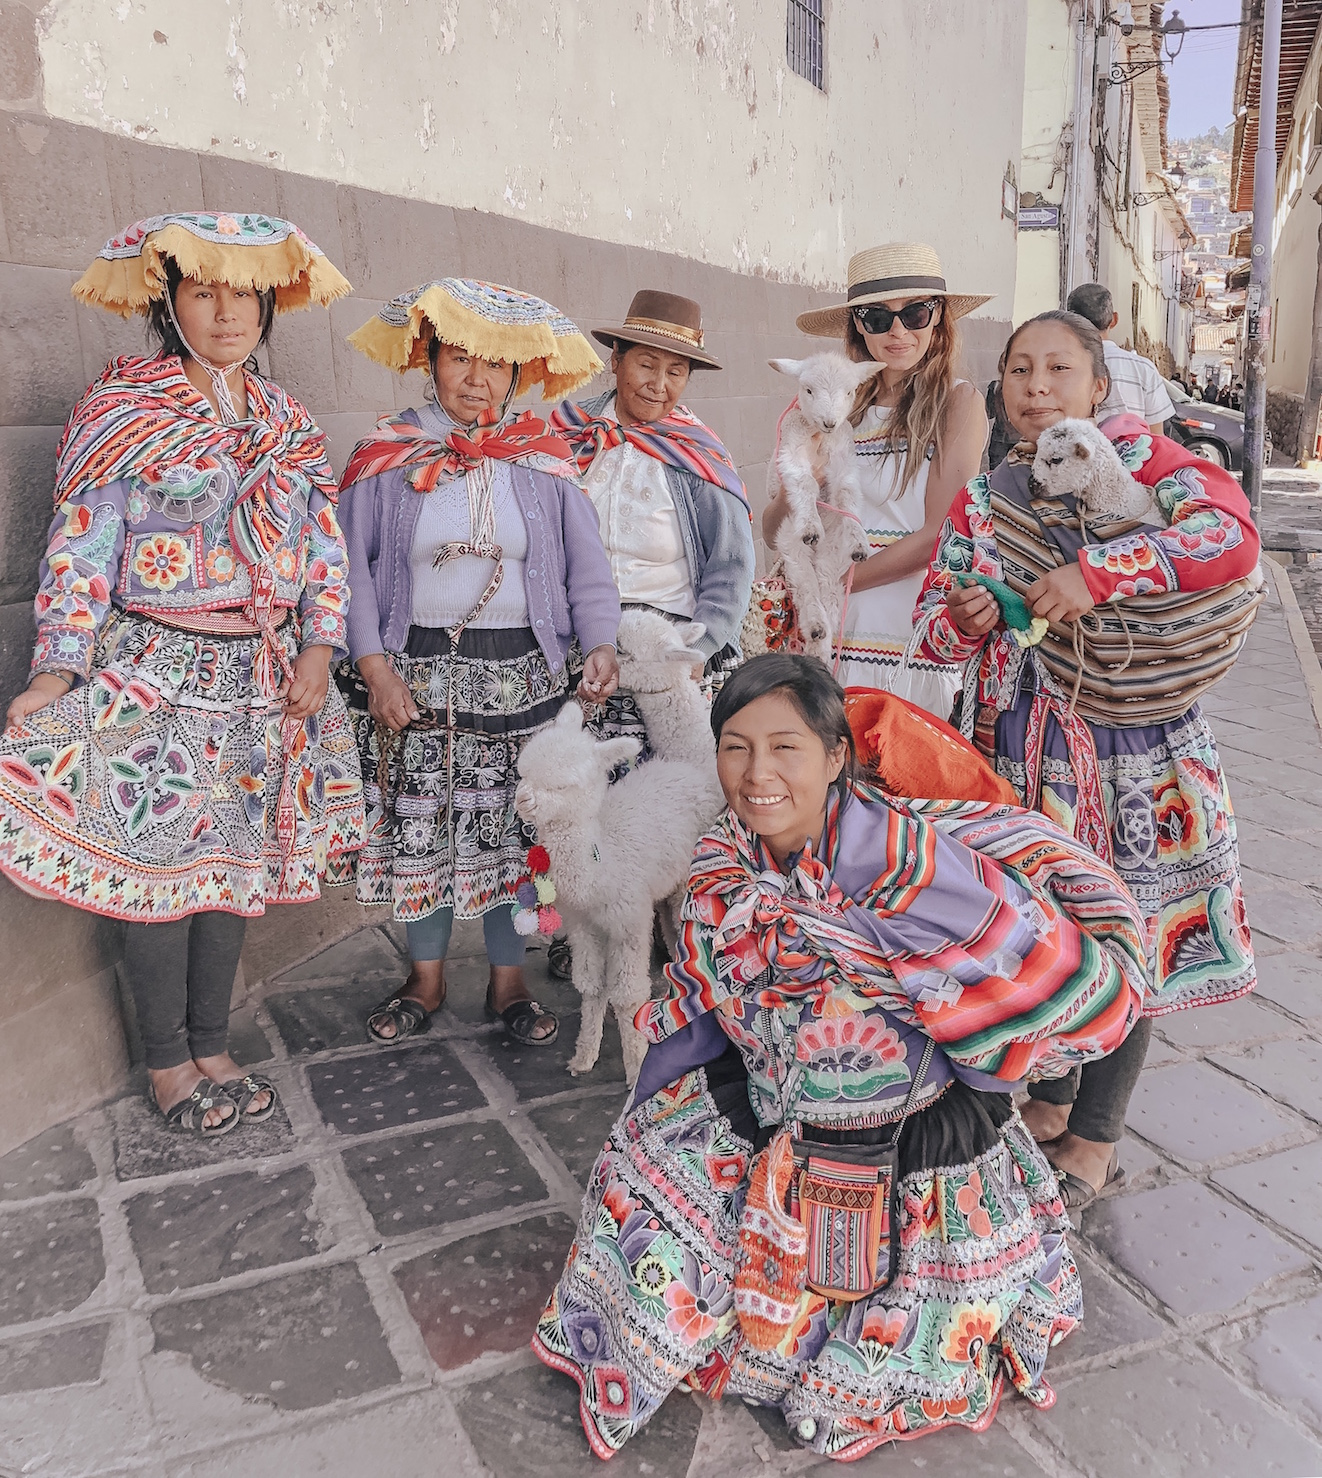 Cuzo travel guide - Peru